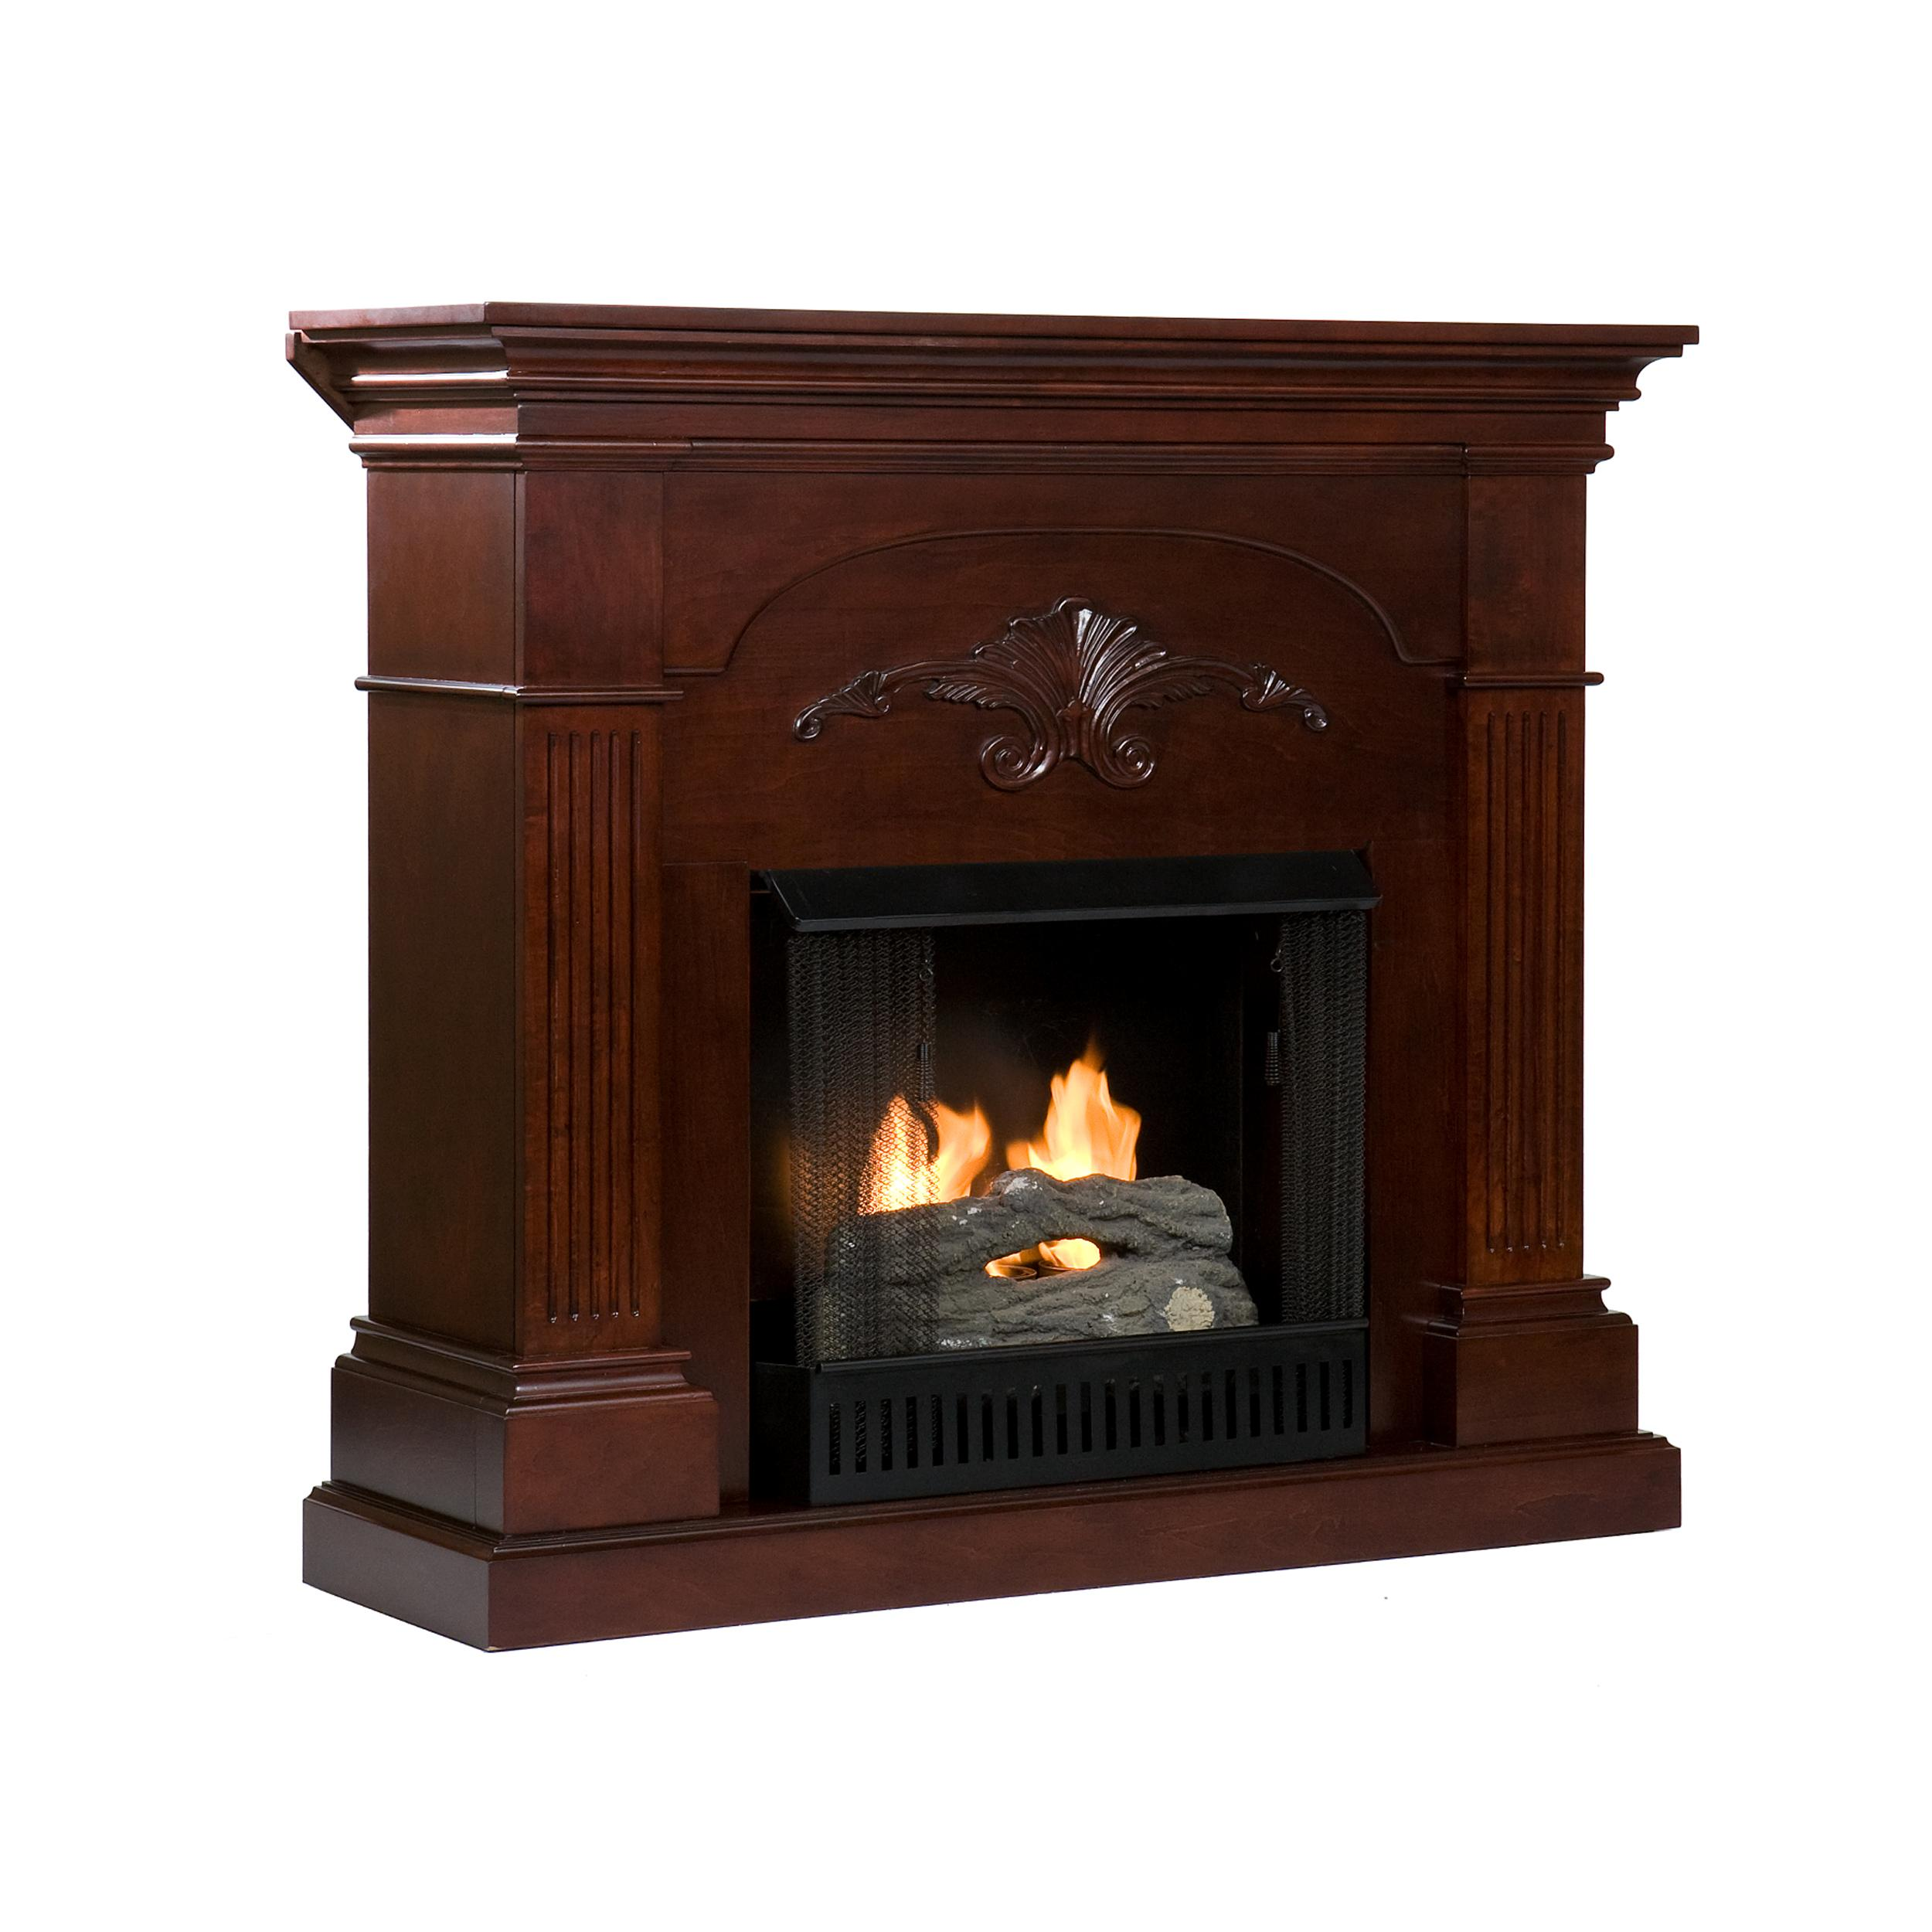 ft hearth lws insert wood electric amazon burning dp larger pleasant fireplace view stove medium sq